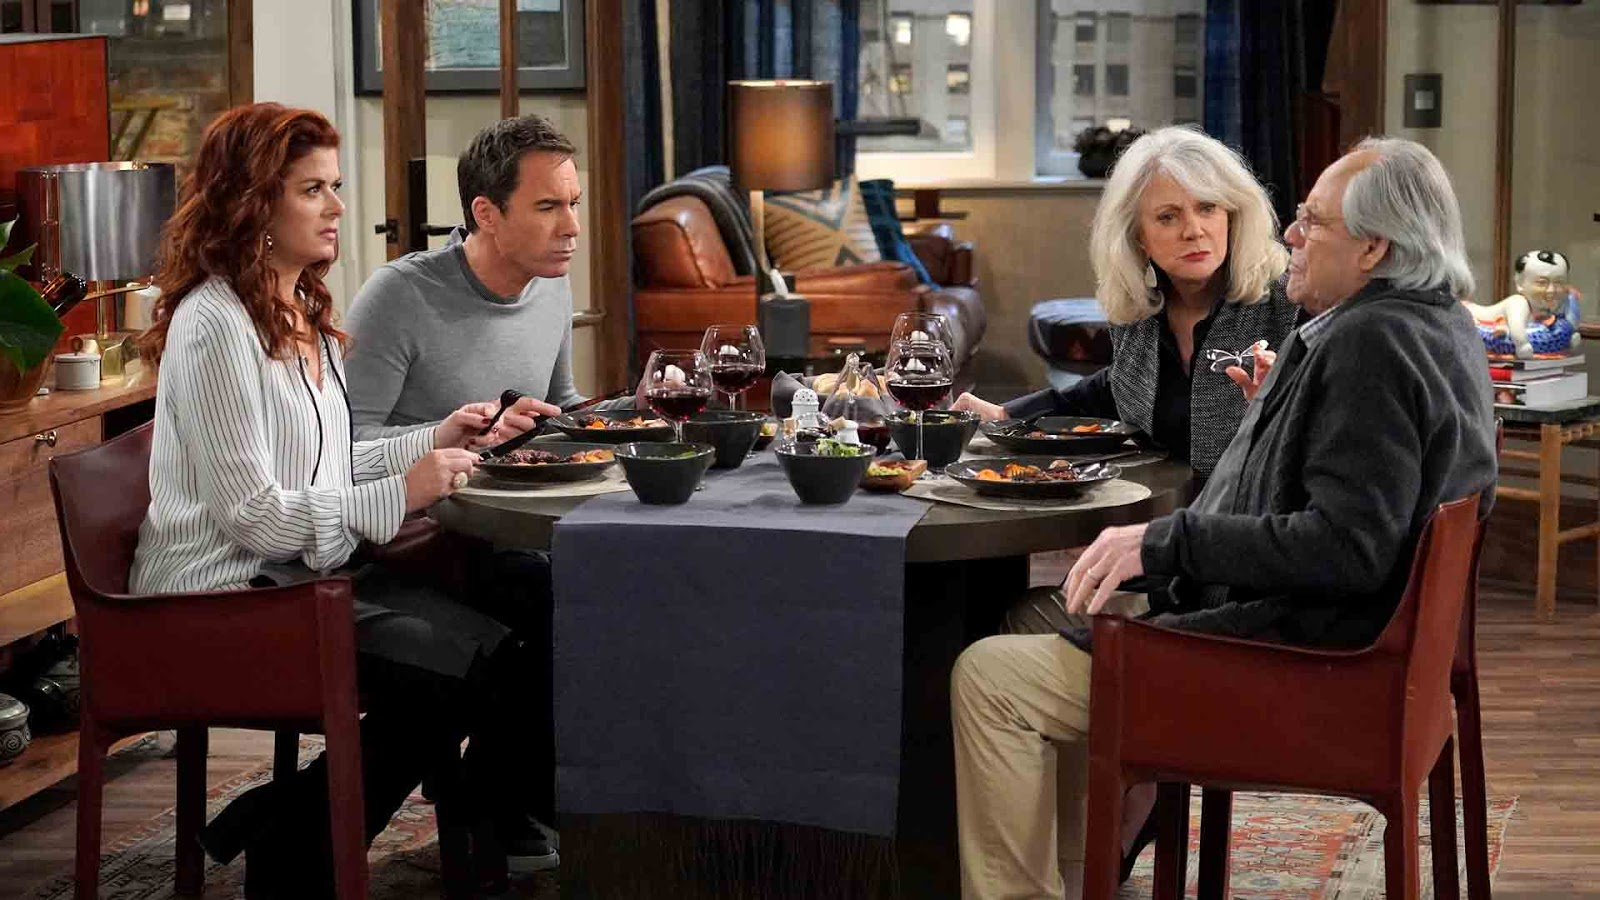 Will & Grace Season 10 Episodes 14 & 15 Review - The TV